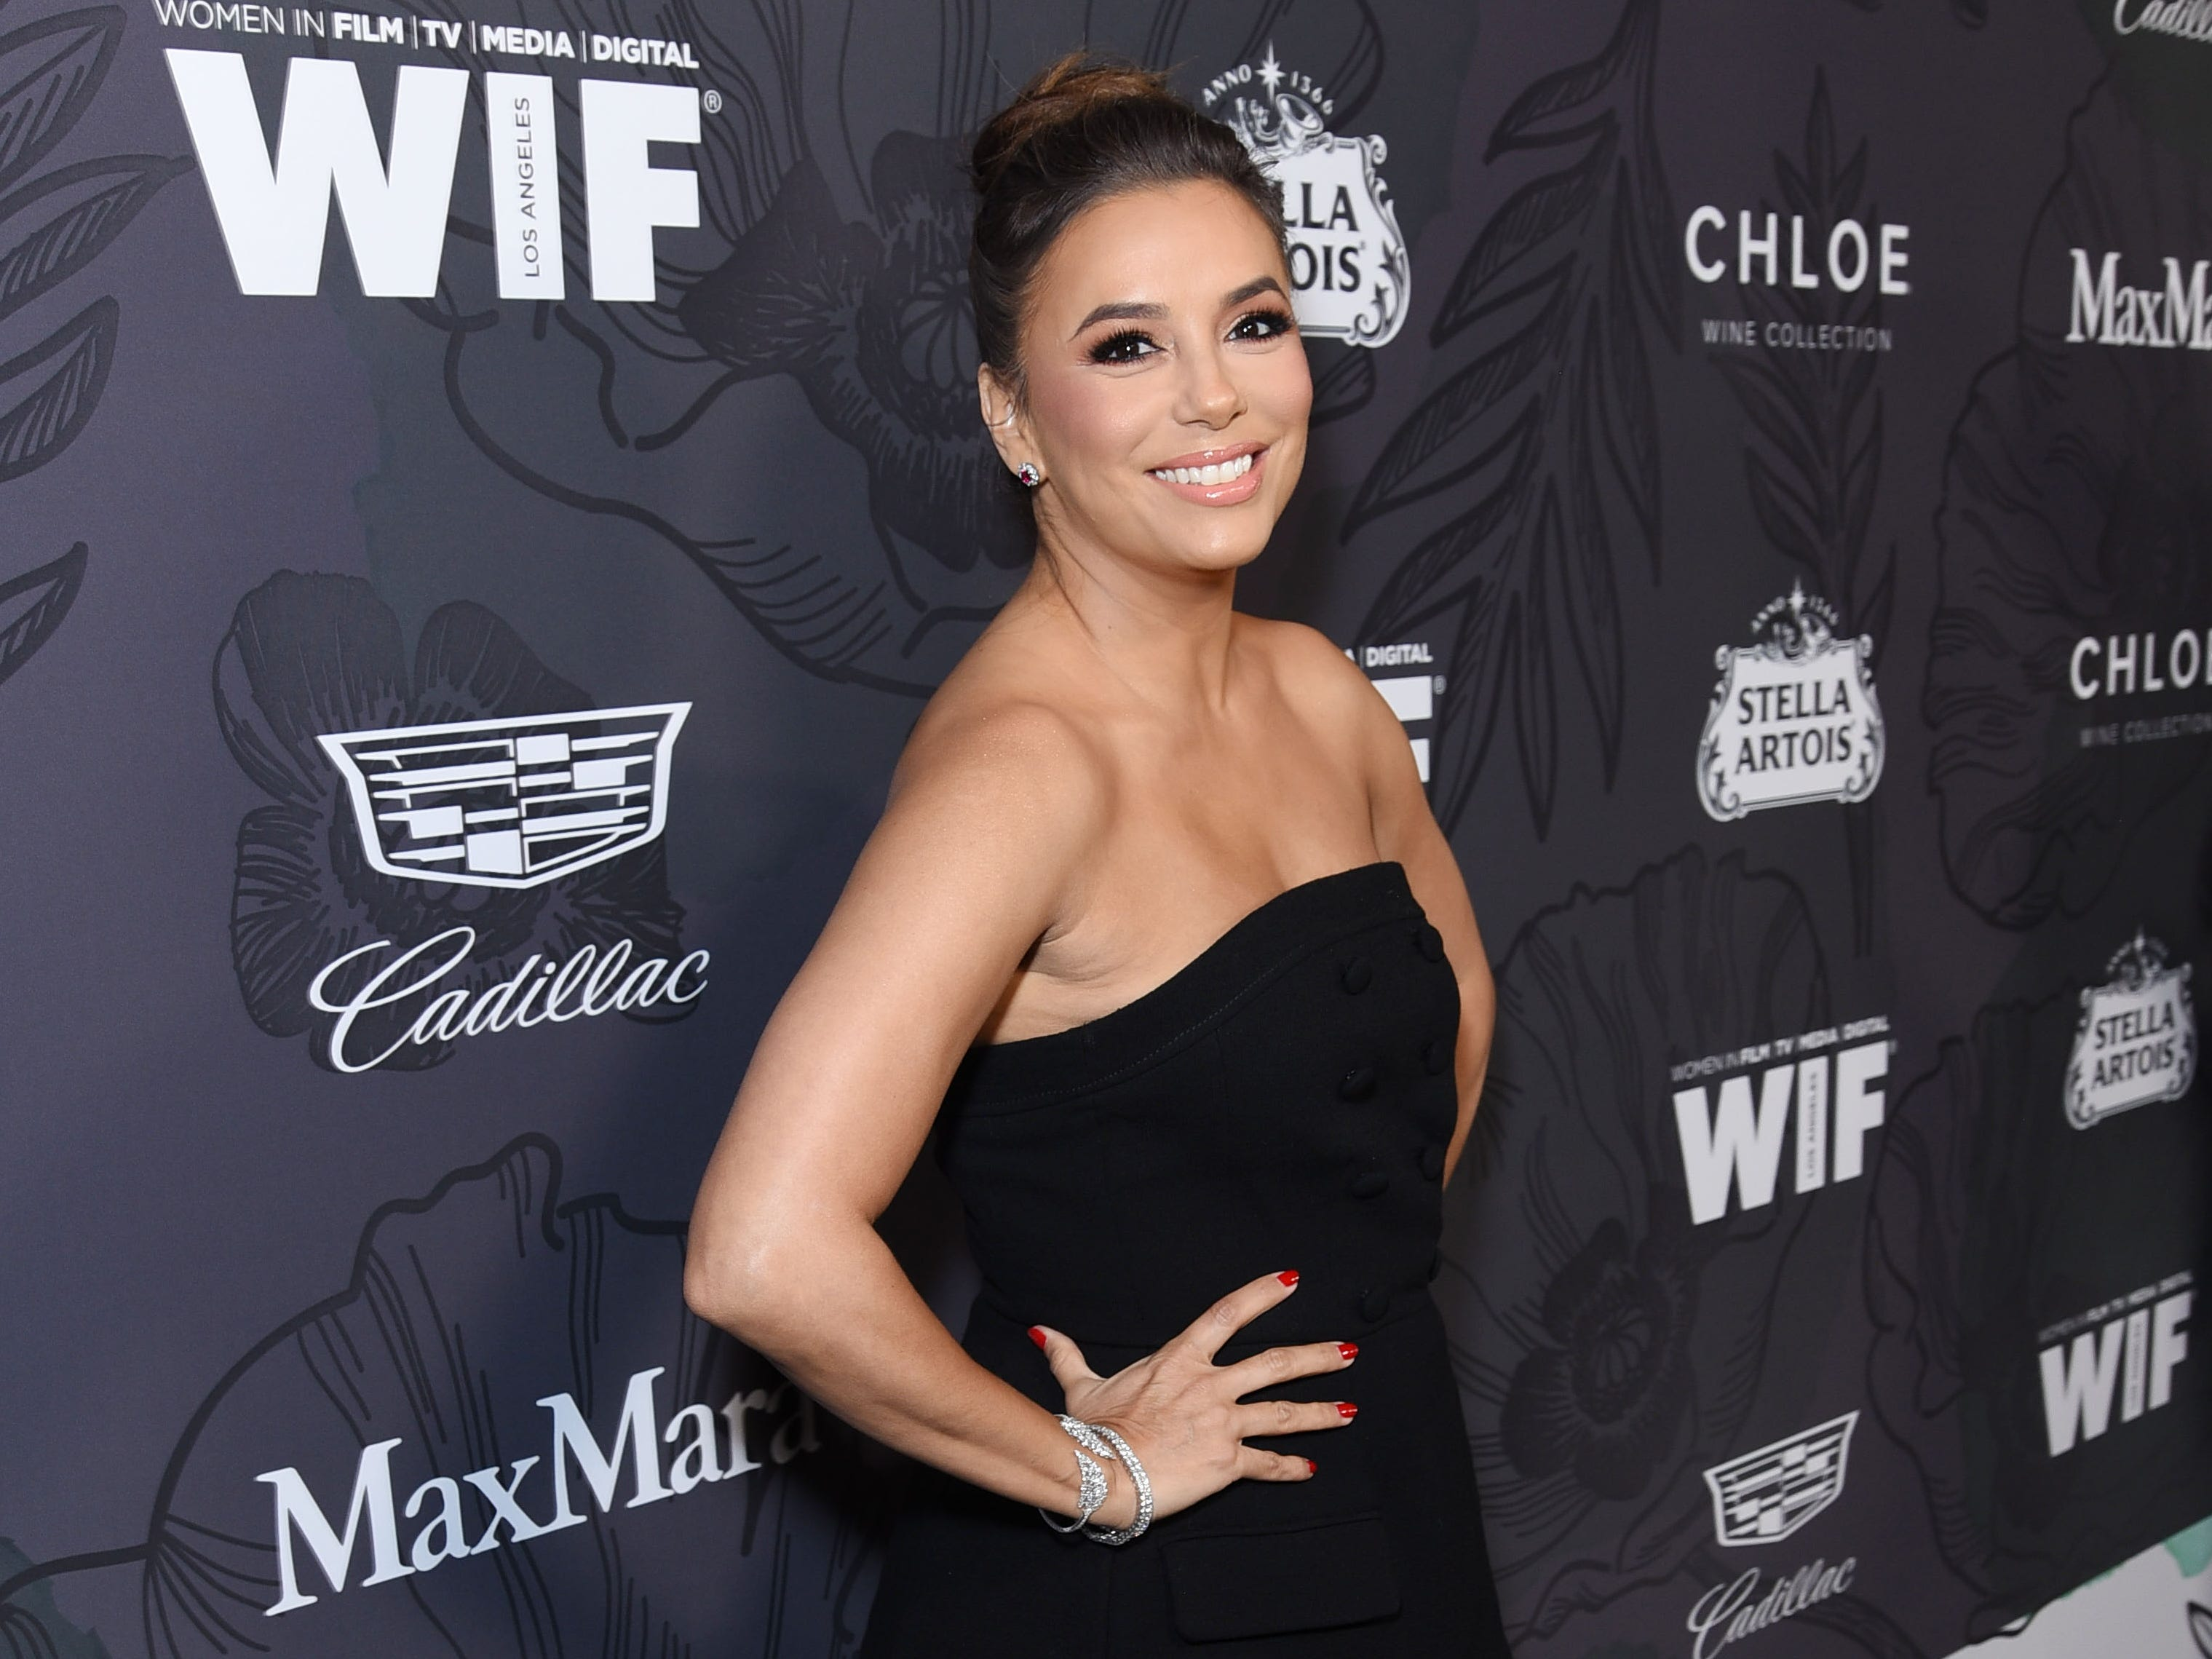 BEVERLY HILLS, CALIFORNIA - FEBRUARY 22:  Eva Longoria attends the 12th Annual Women in Film Oscar Nominees Party Presented by Max Mara with additional support from Chloe Wine Collection, Stella Artois and Cadillac at Spring Place on February 22, 2019 in Los Angeles, California. (Photo by Presley Ann/Getty Images for Women In Film) ORG XMIT: 775291745 ORIG FILE ID: 1131511673